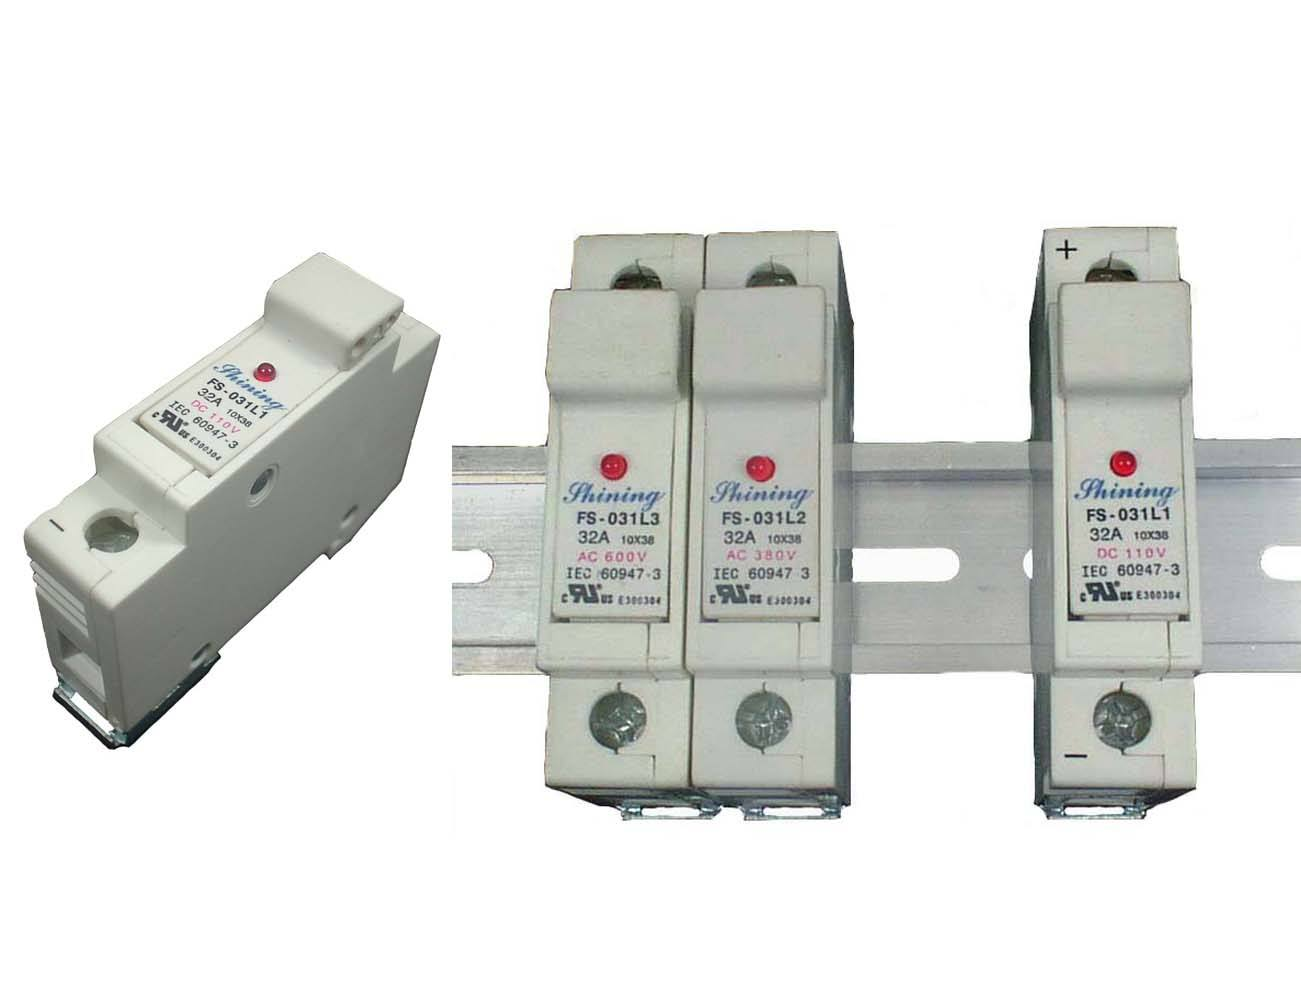 din rail mounted fuse holders  din  free engine image for